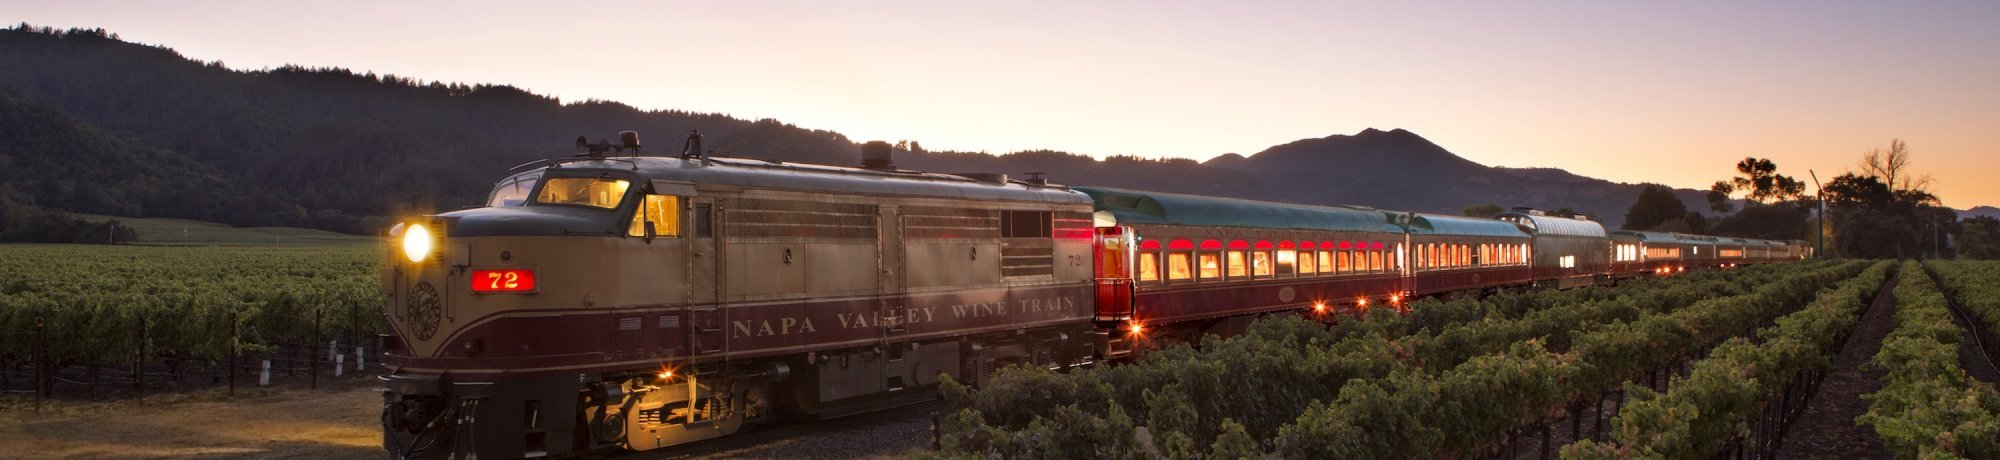 Donations: Nonprofit Organizations | Napa Valley Wine Train